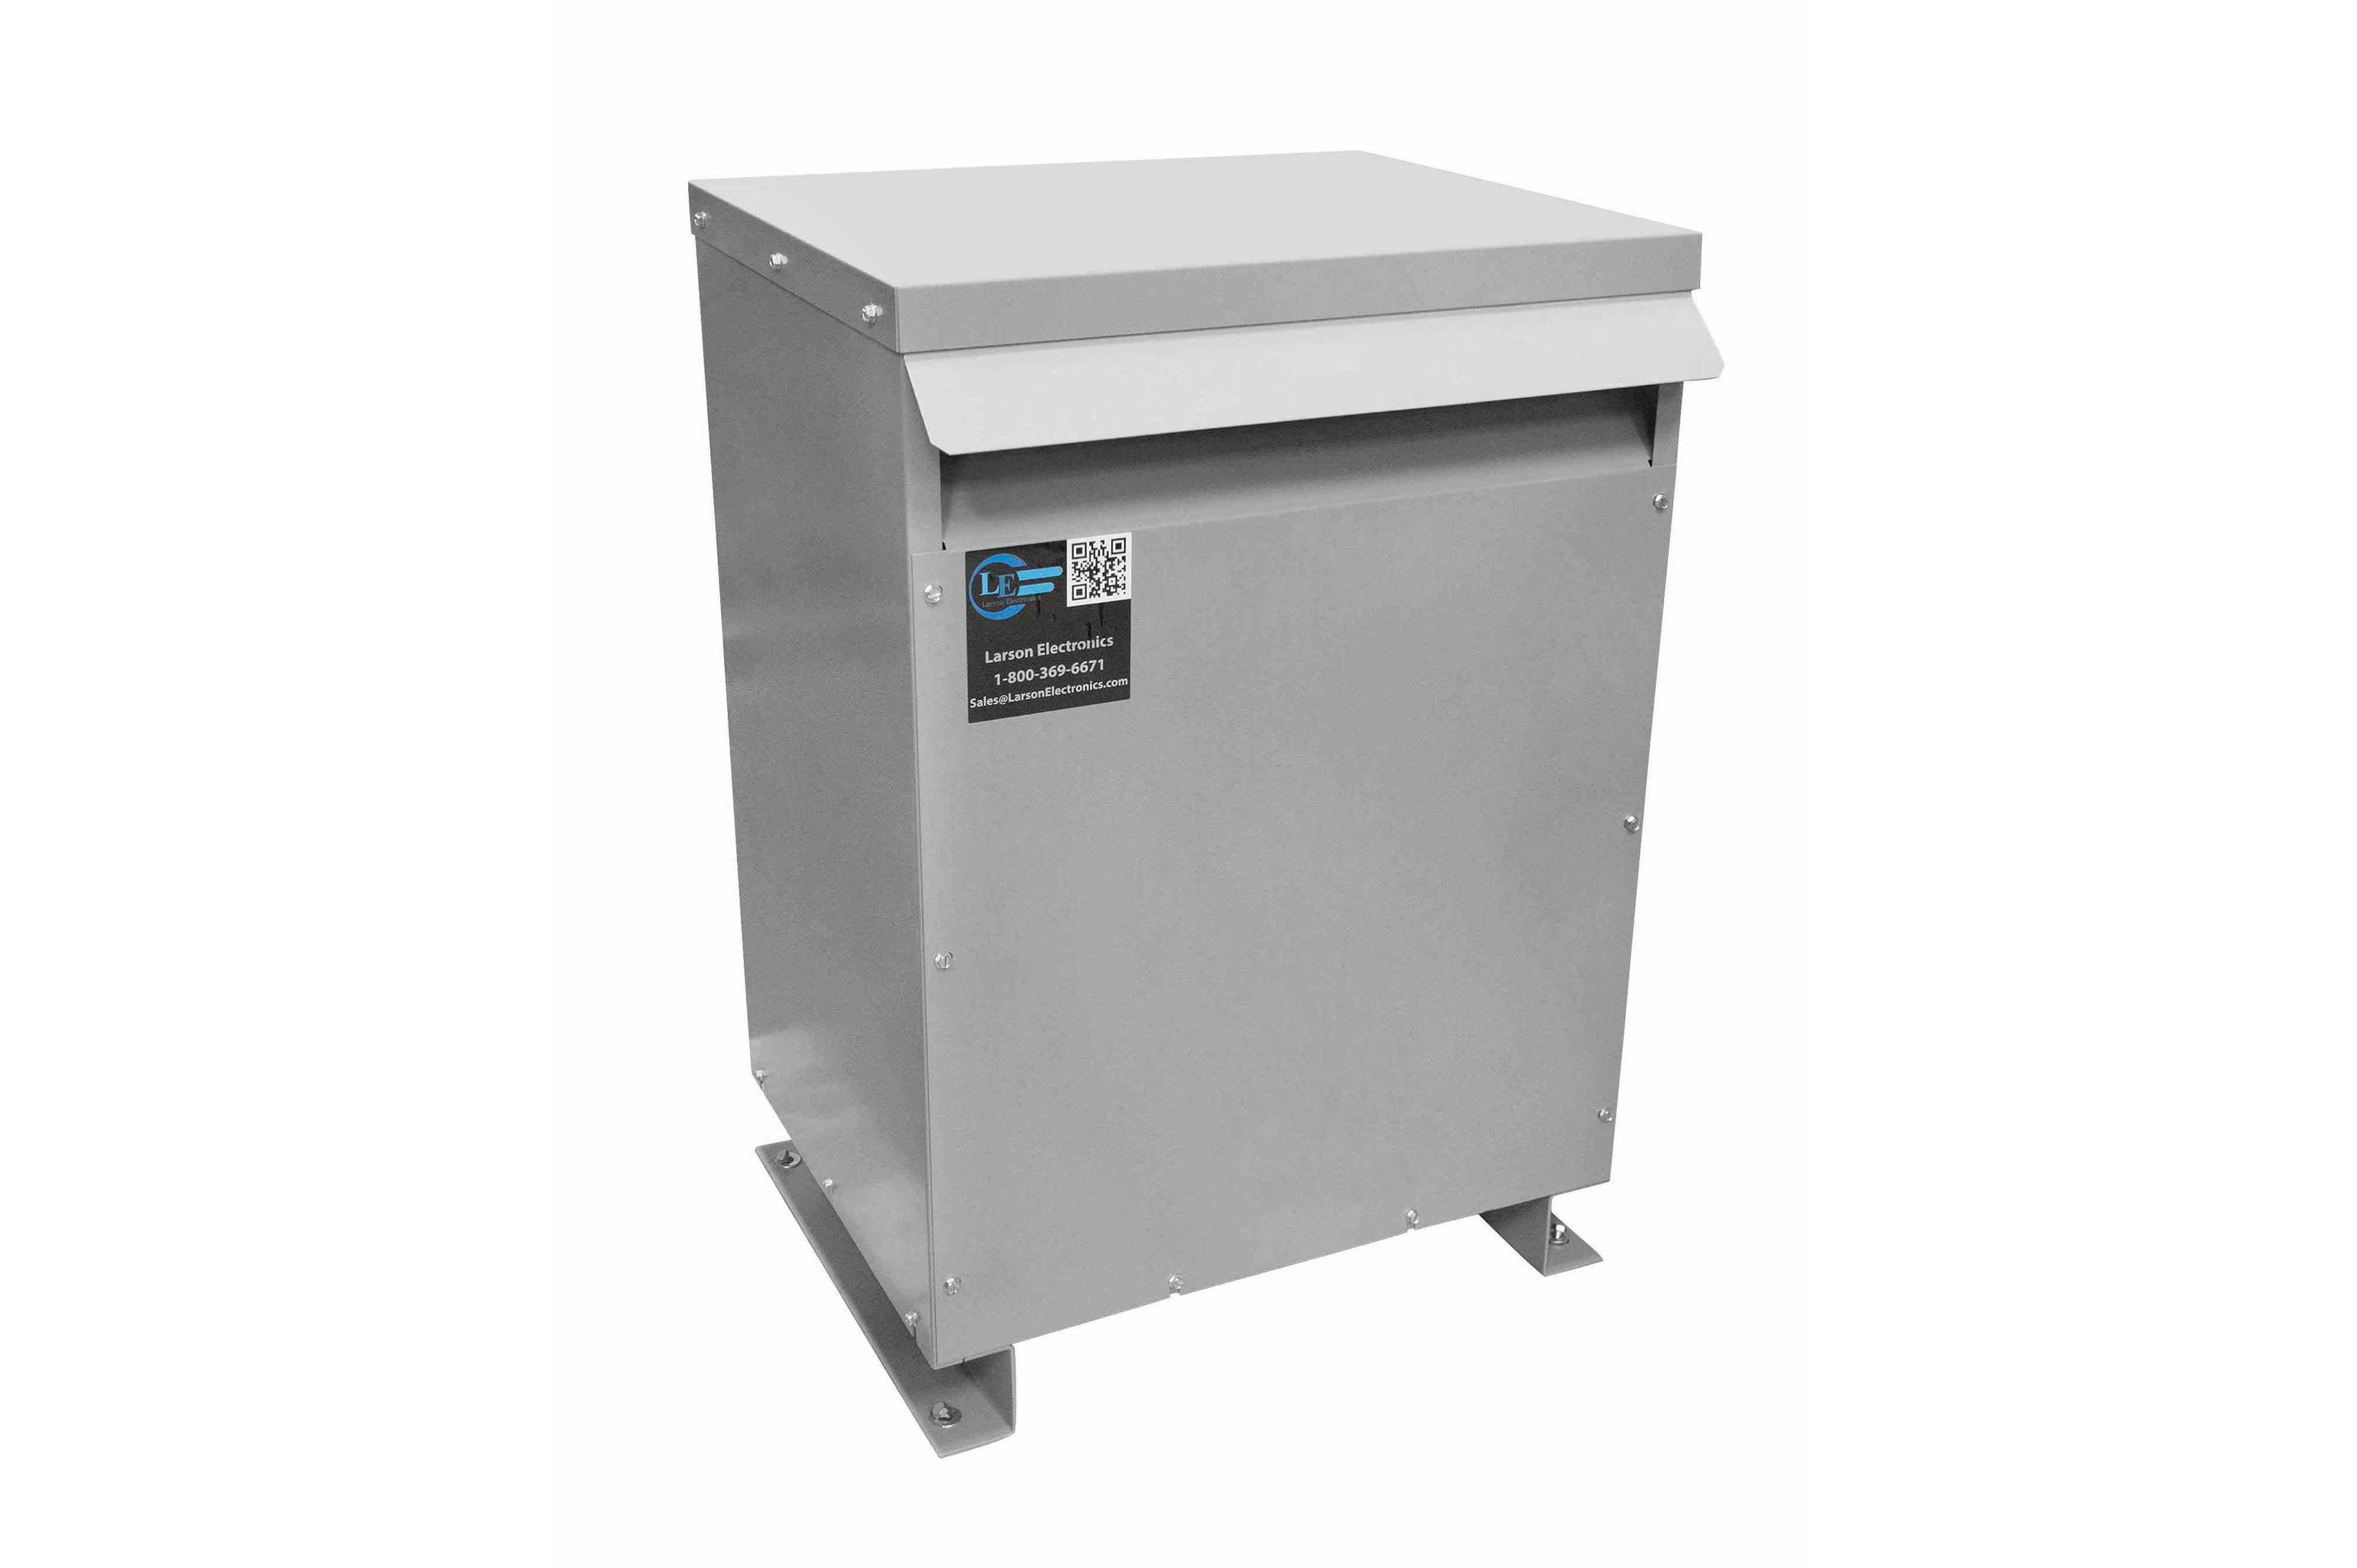 225 kVA 3PH Isolation Transformer, 480V Delta Primary, 208V Delta Secondary, N3R, Ventilated, 60 Hz